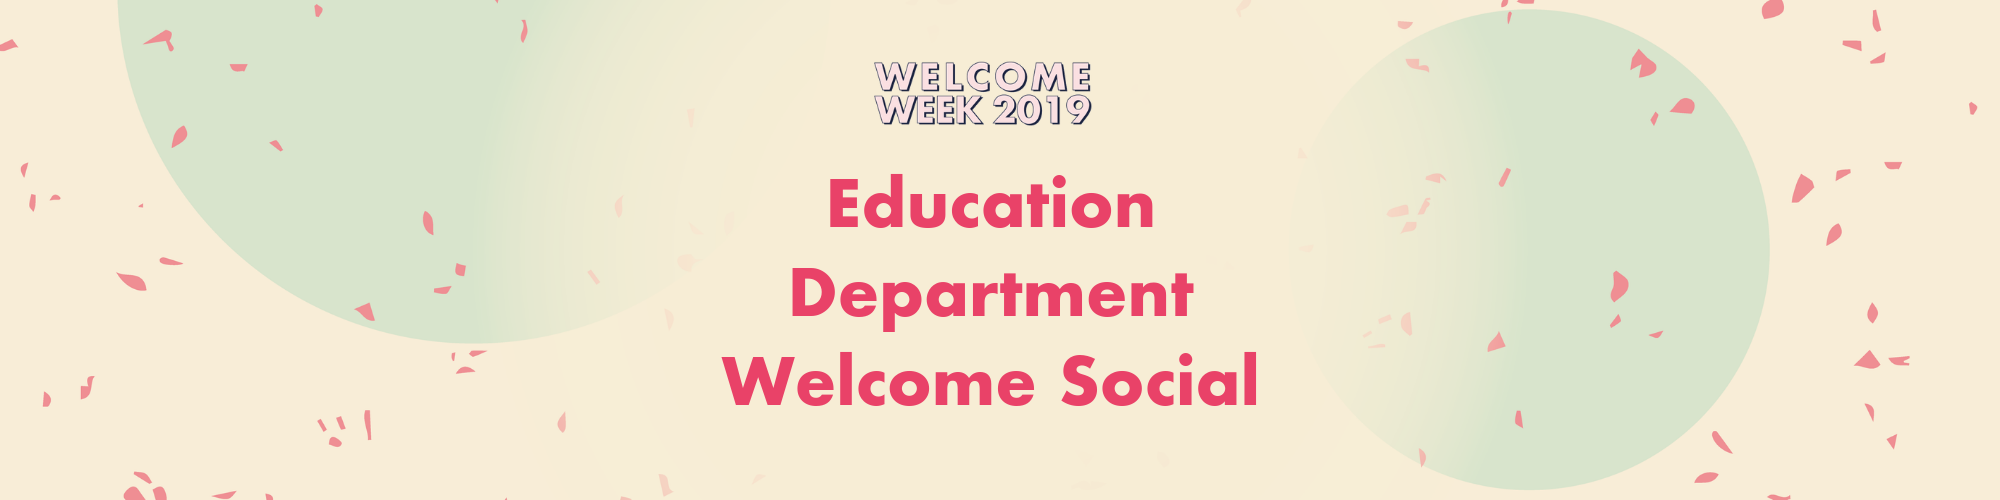 Education Department Welcome Social